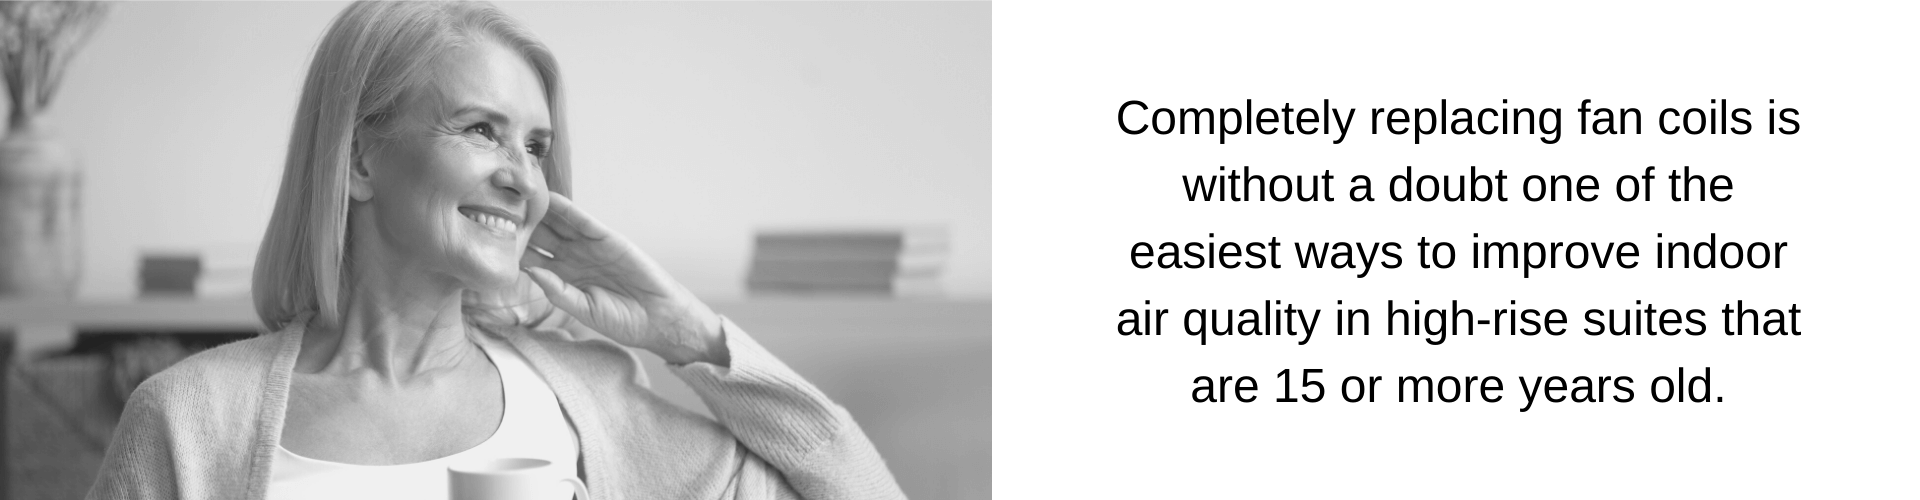 Completely replacing fan coils is without a doubt one of the easiest ways to improve indoor air quality in high-rise suites that are 15 or more years old.